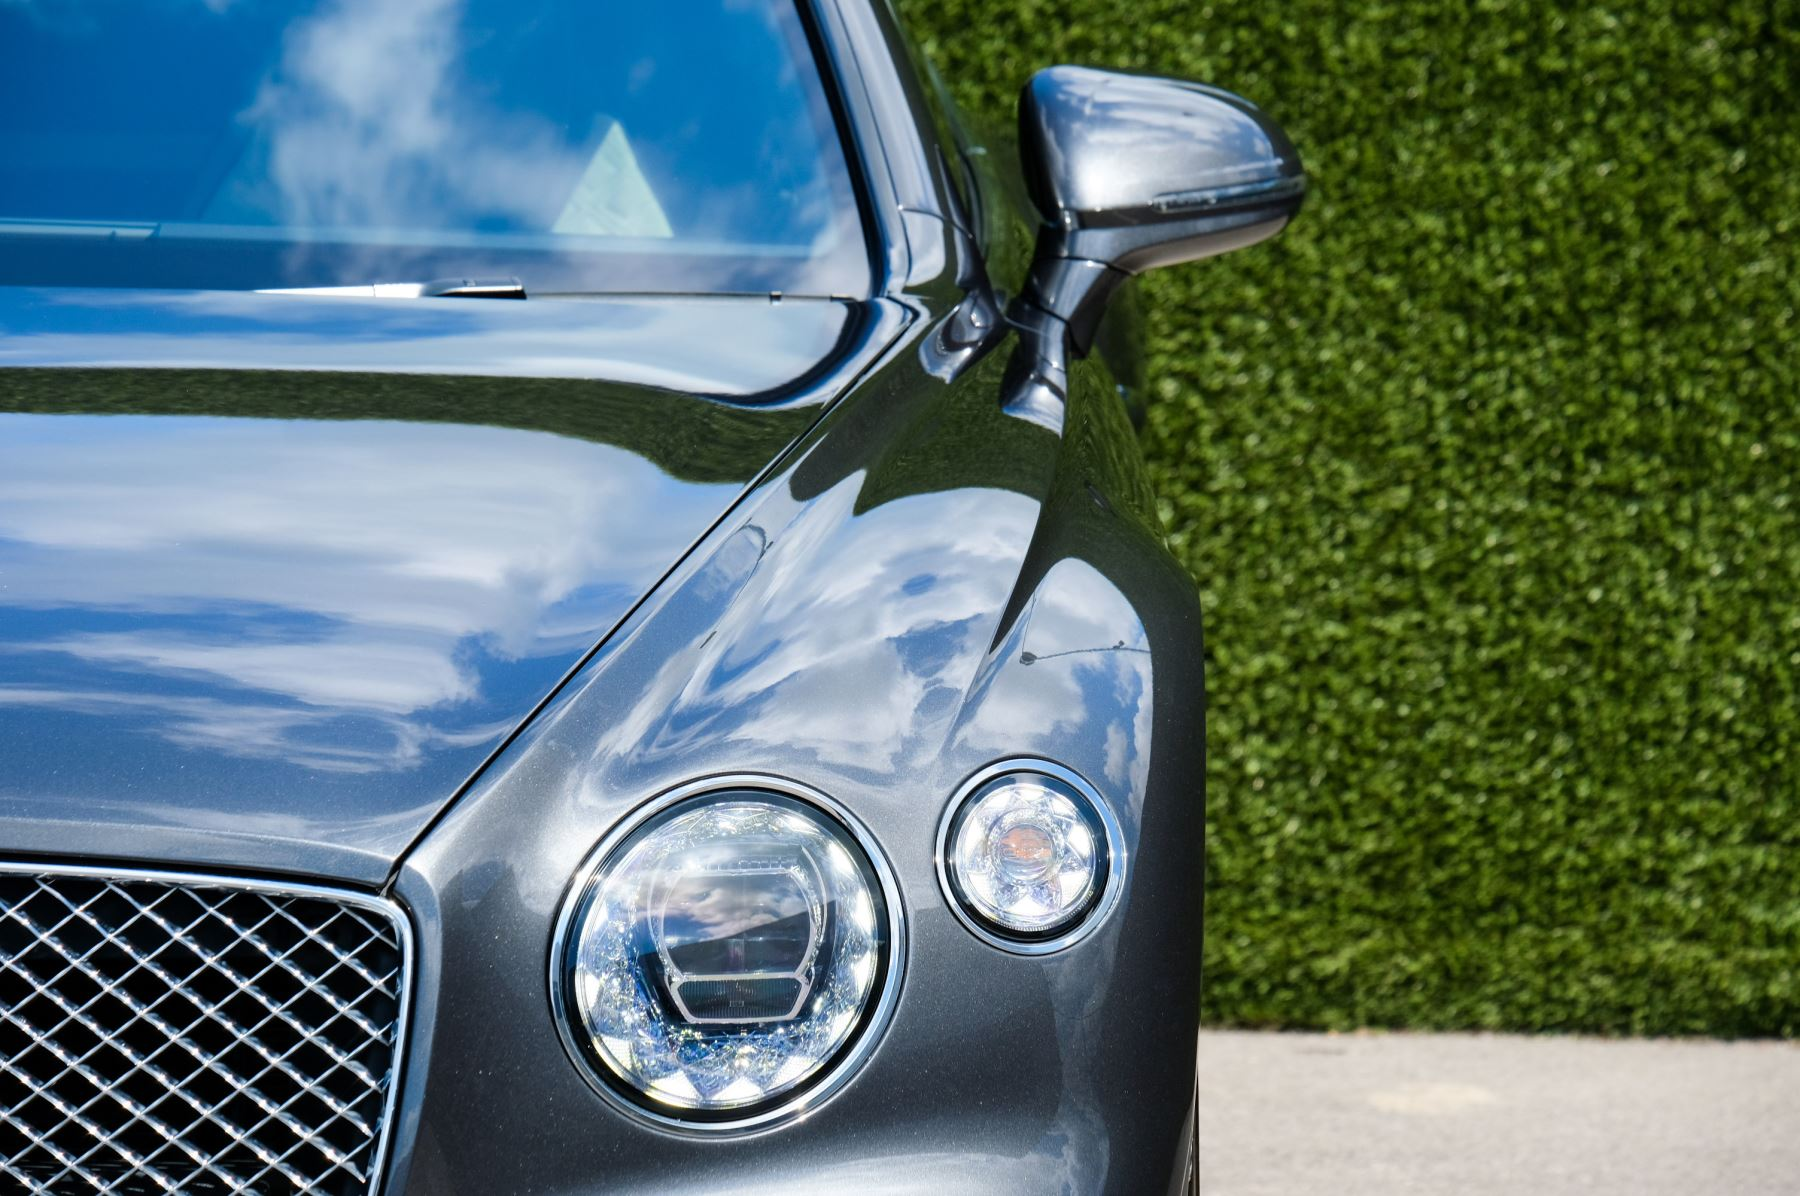 Bentley Continental GT 6.0 W12 - Mulliner Driving Specification image 6